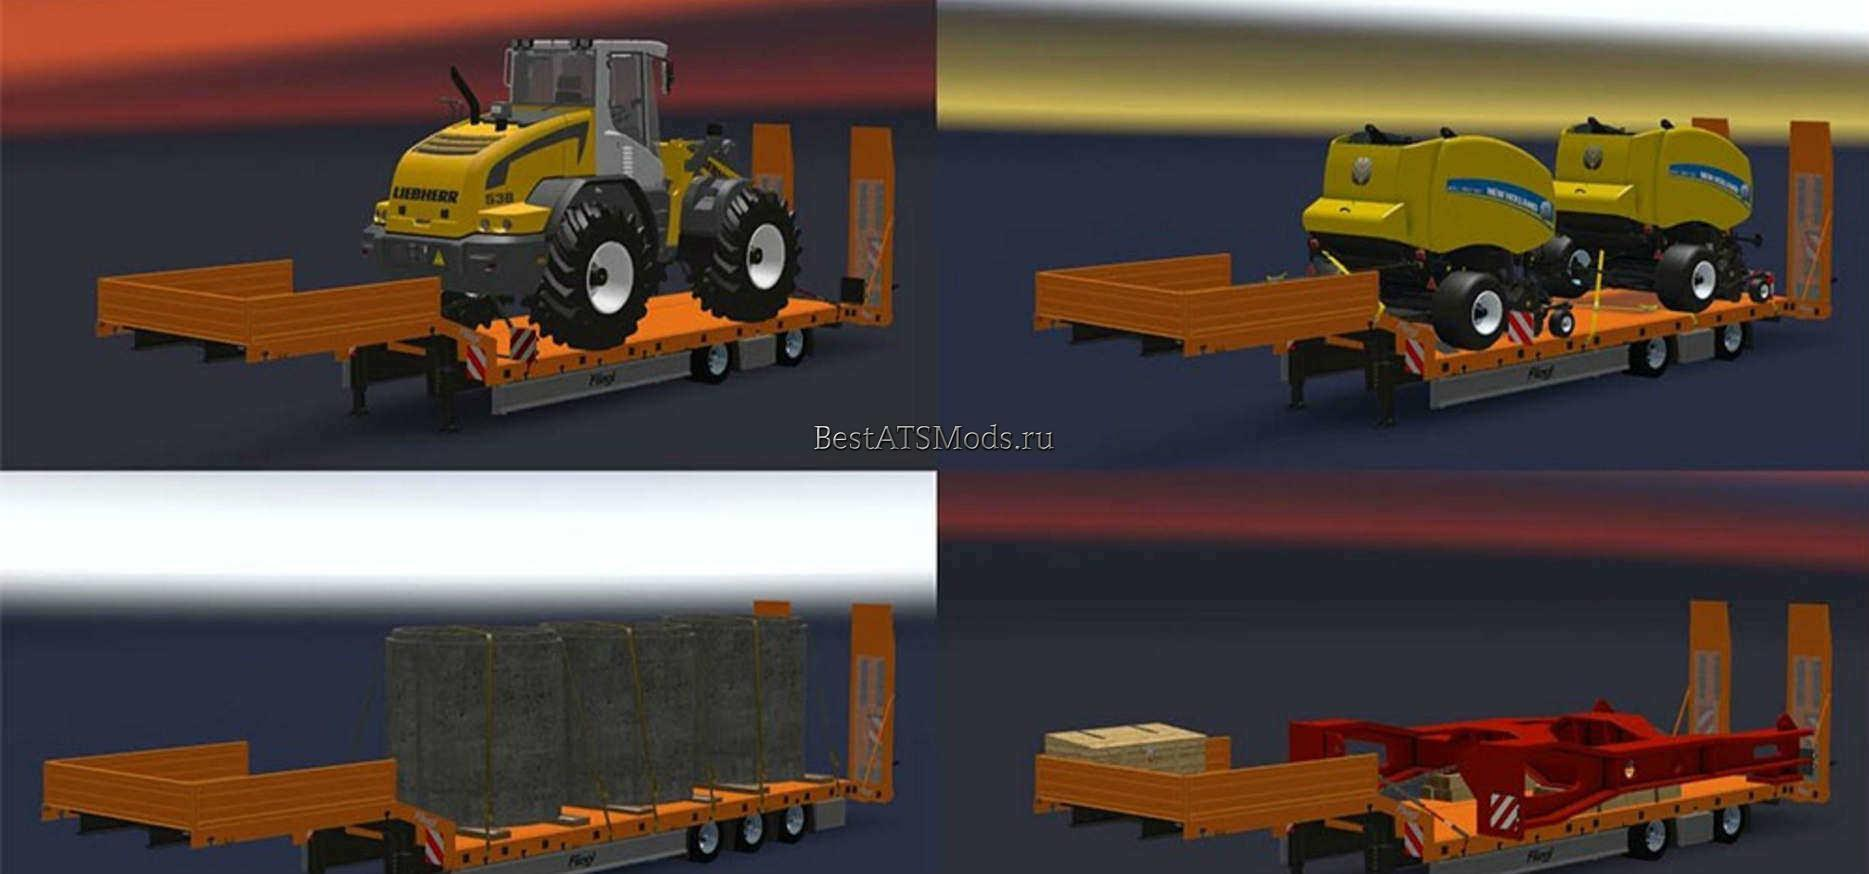 rsz_Мод_полуприцепы_fliegl_semi_trailer_2_axis_and_3_axis_mod_american_truck_simulator